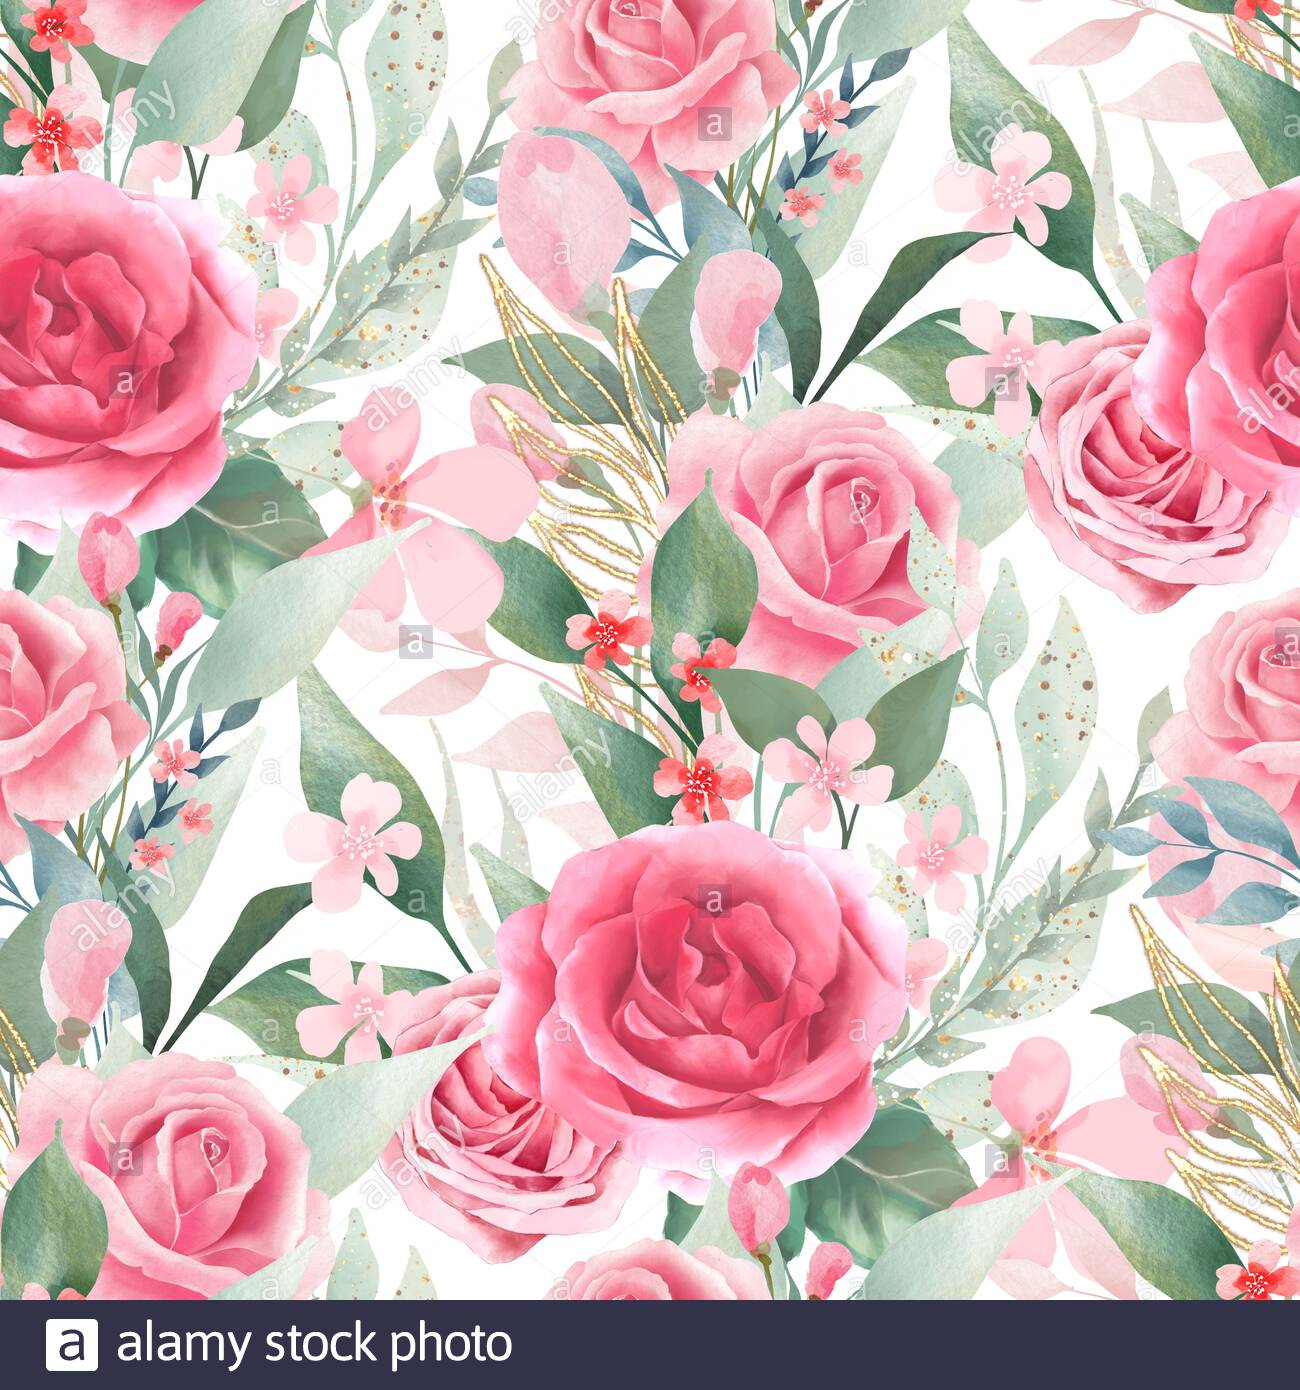 Watercolor floral backgrounds Seamless pattern with pink roses 1300x1390